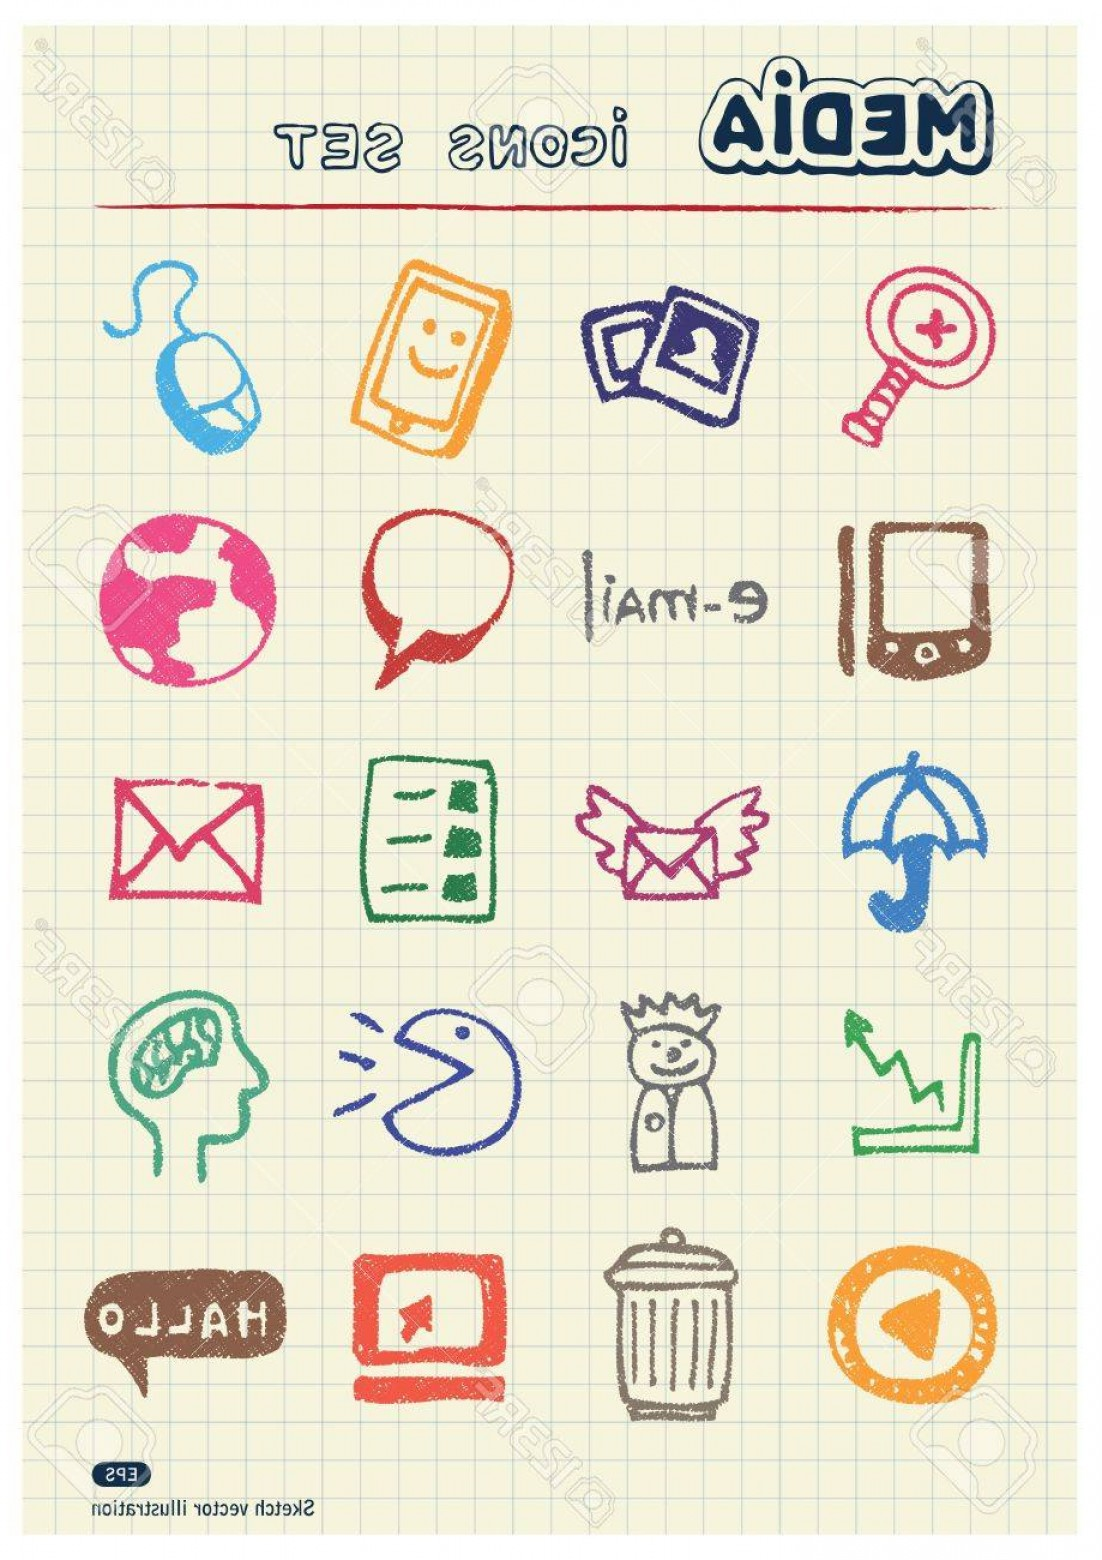 Pencil Icon Vectors Social Media: Photomedia And Social Network Web Icons Set Drawn By Color Pencils Hand Drawn Elements Pack Isolated On P